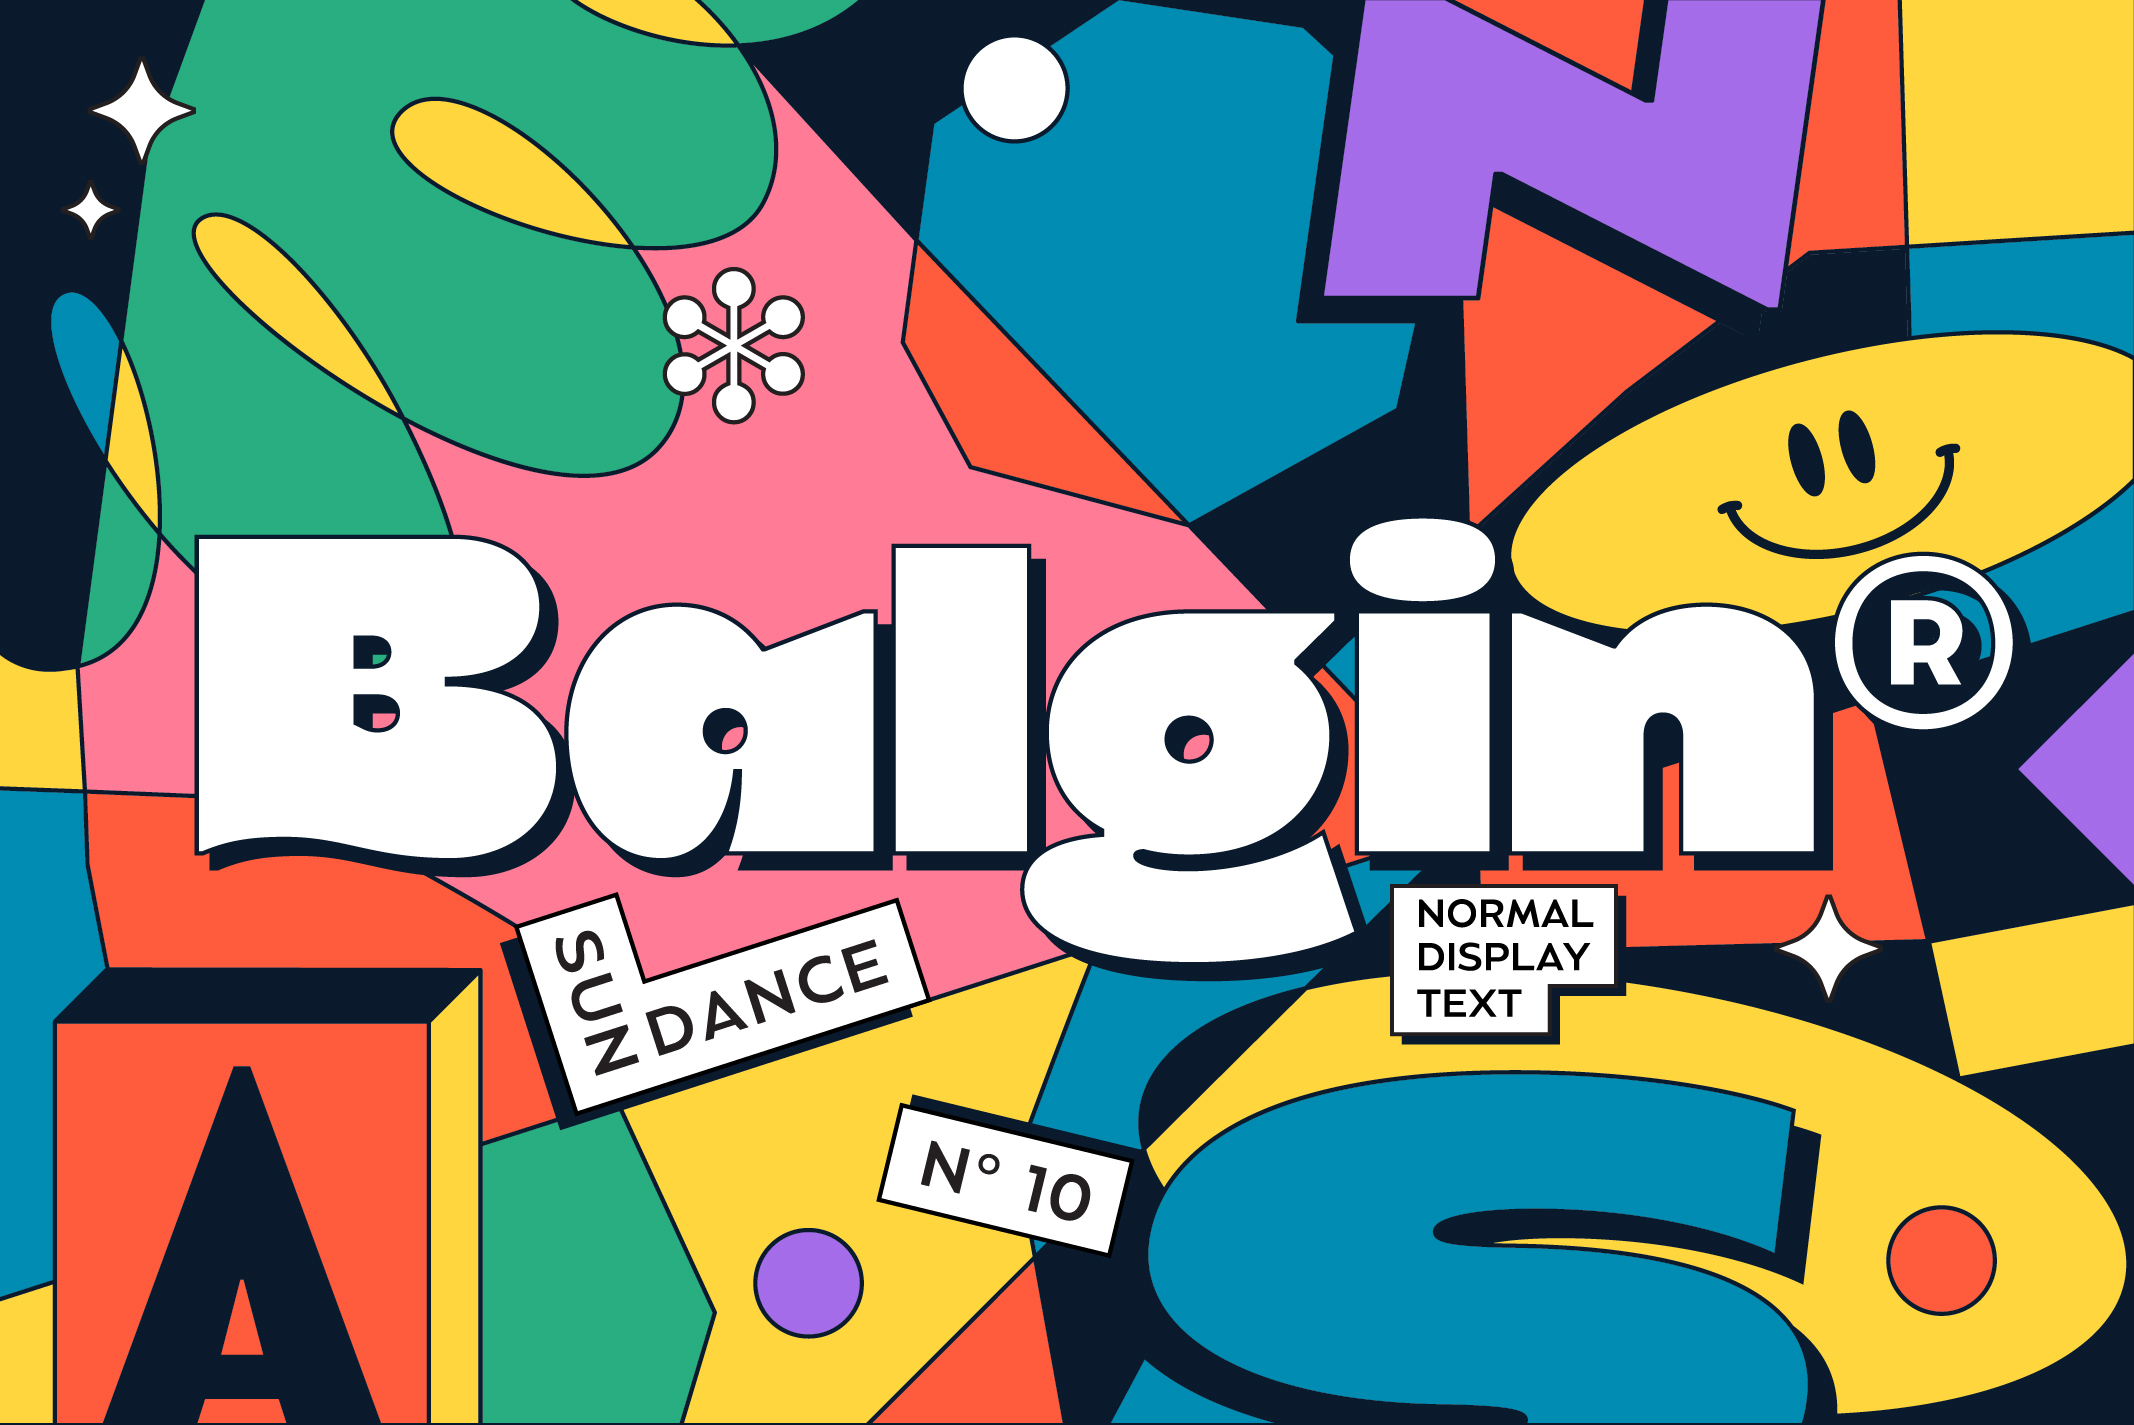 Balgin is a new display typeface designed by Cahya Sofyan for Typeverything.com